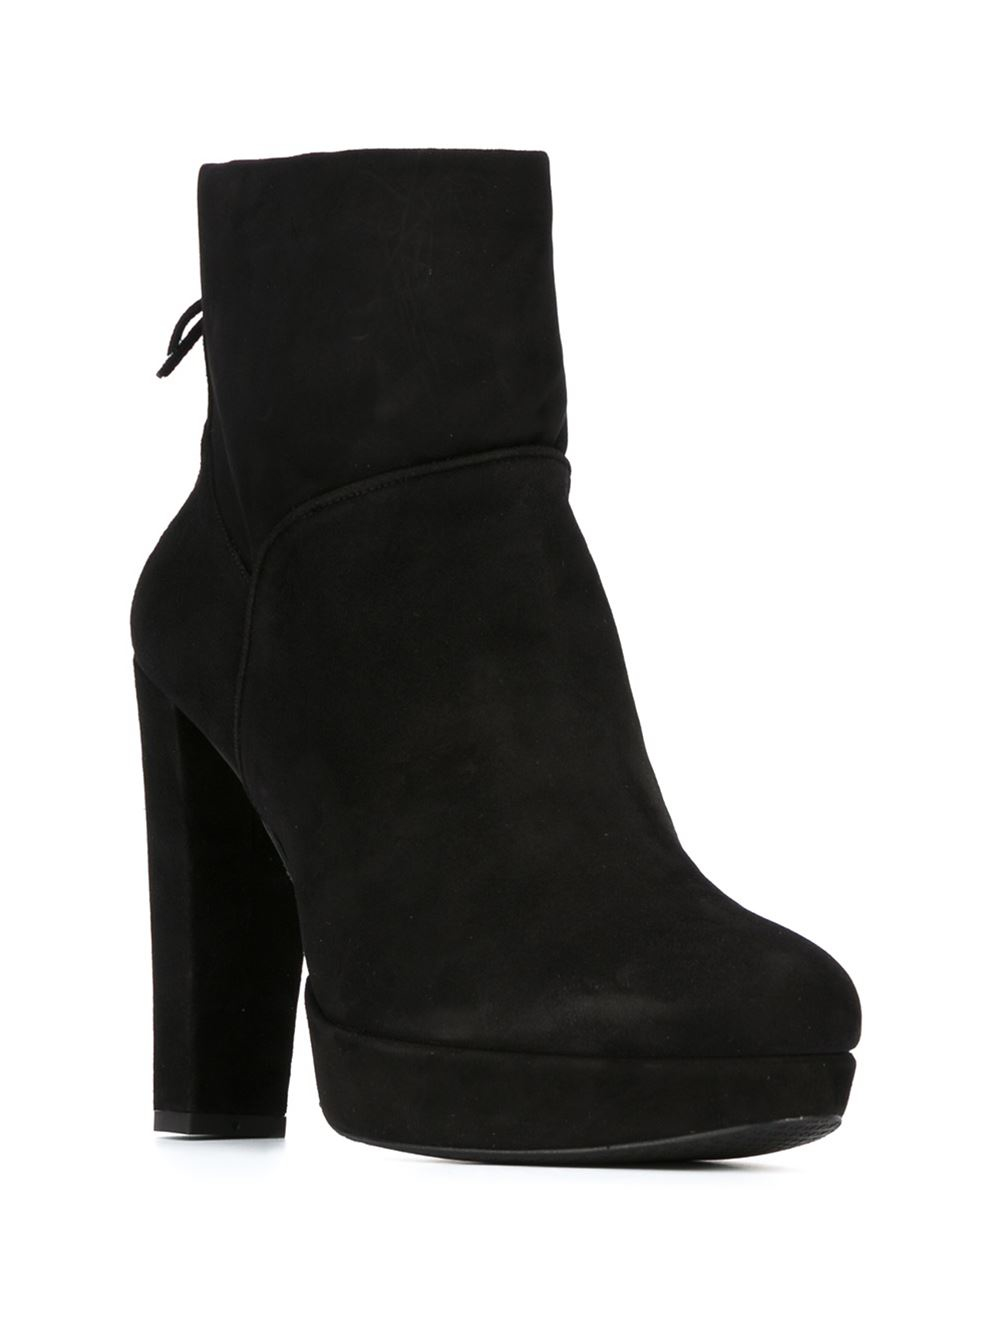 Stuart weitzman Chunky Heel Ankle Boots in Black | Lyst